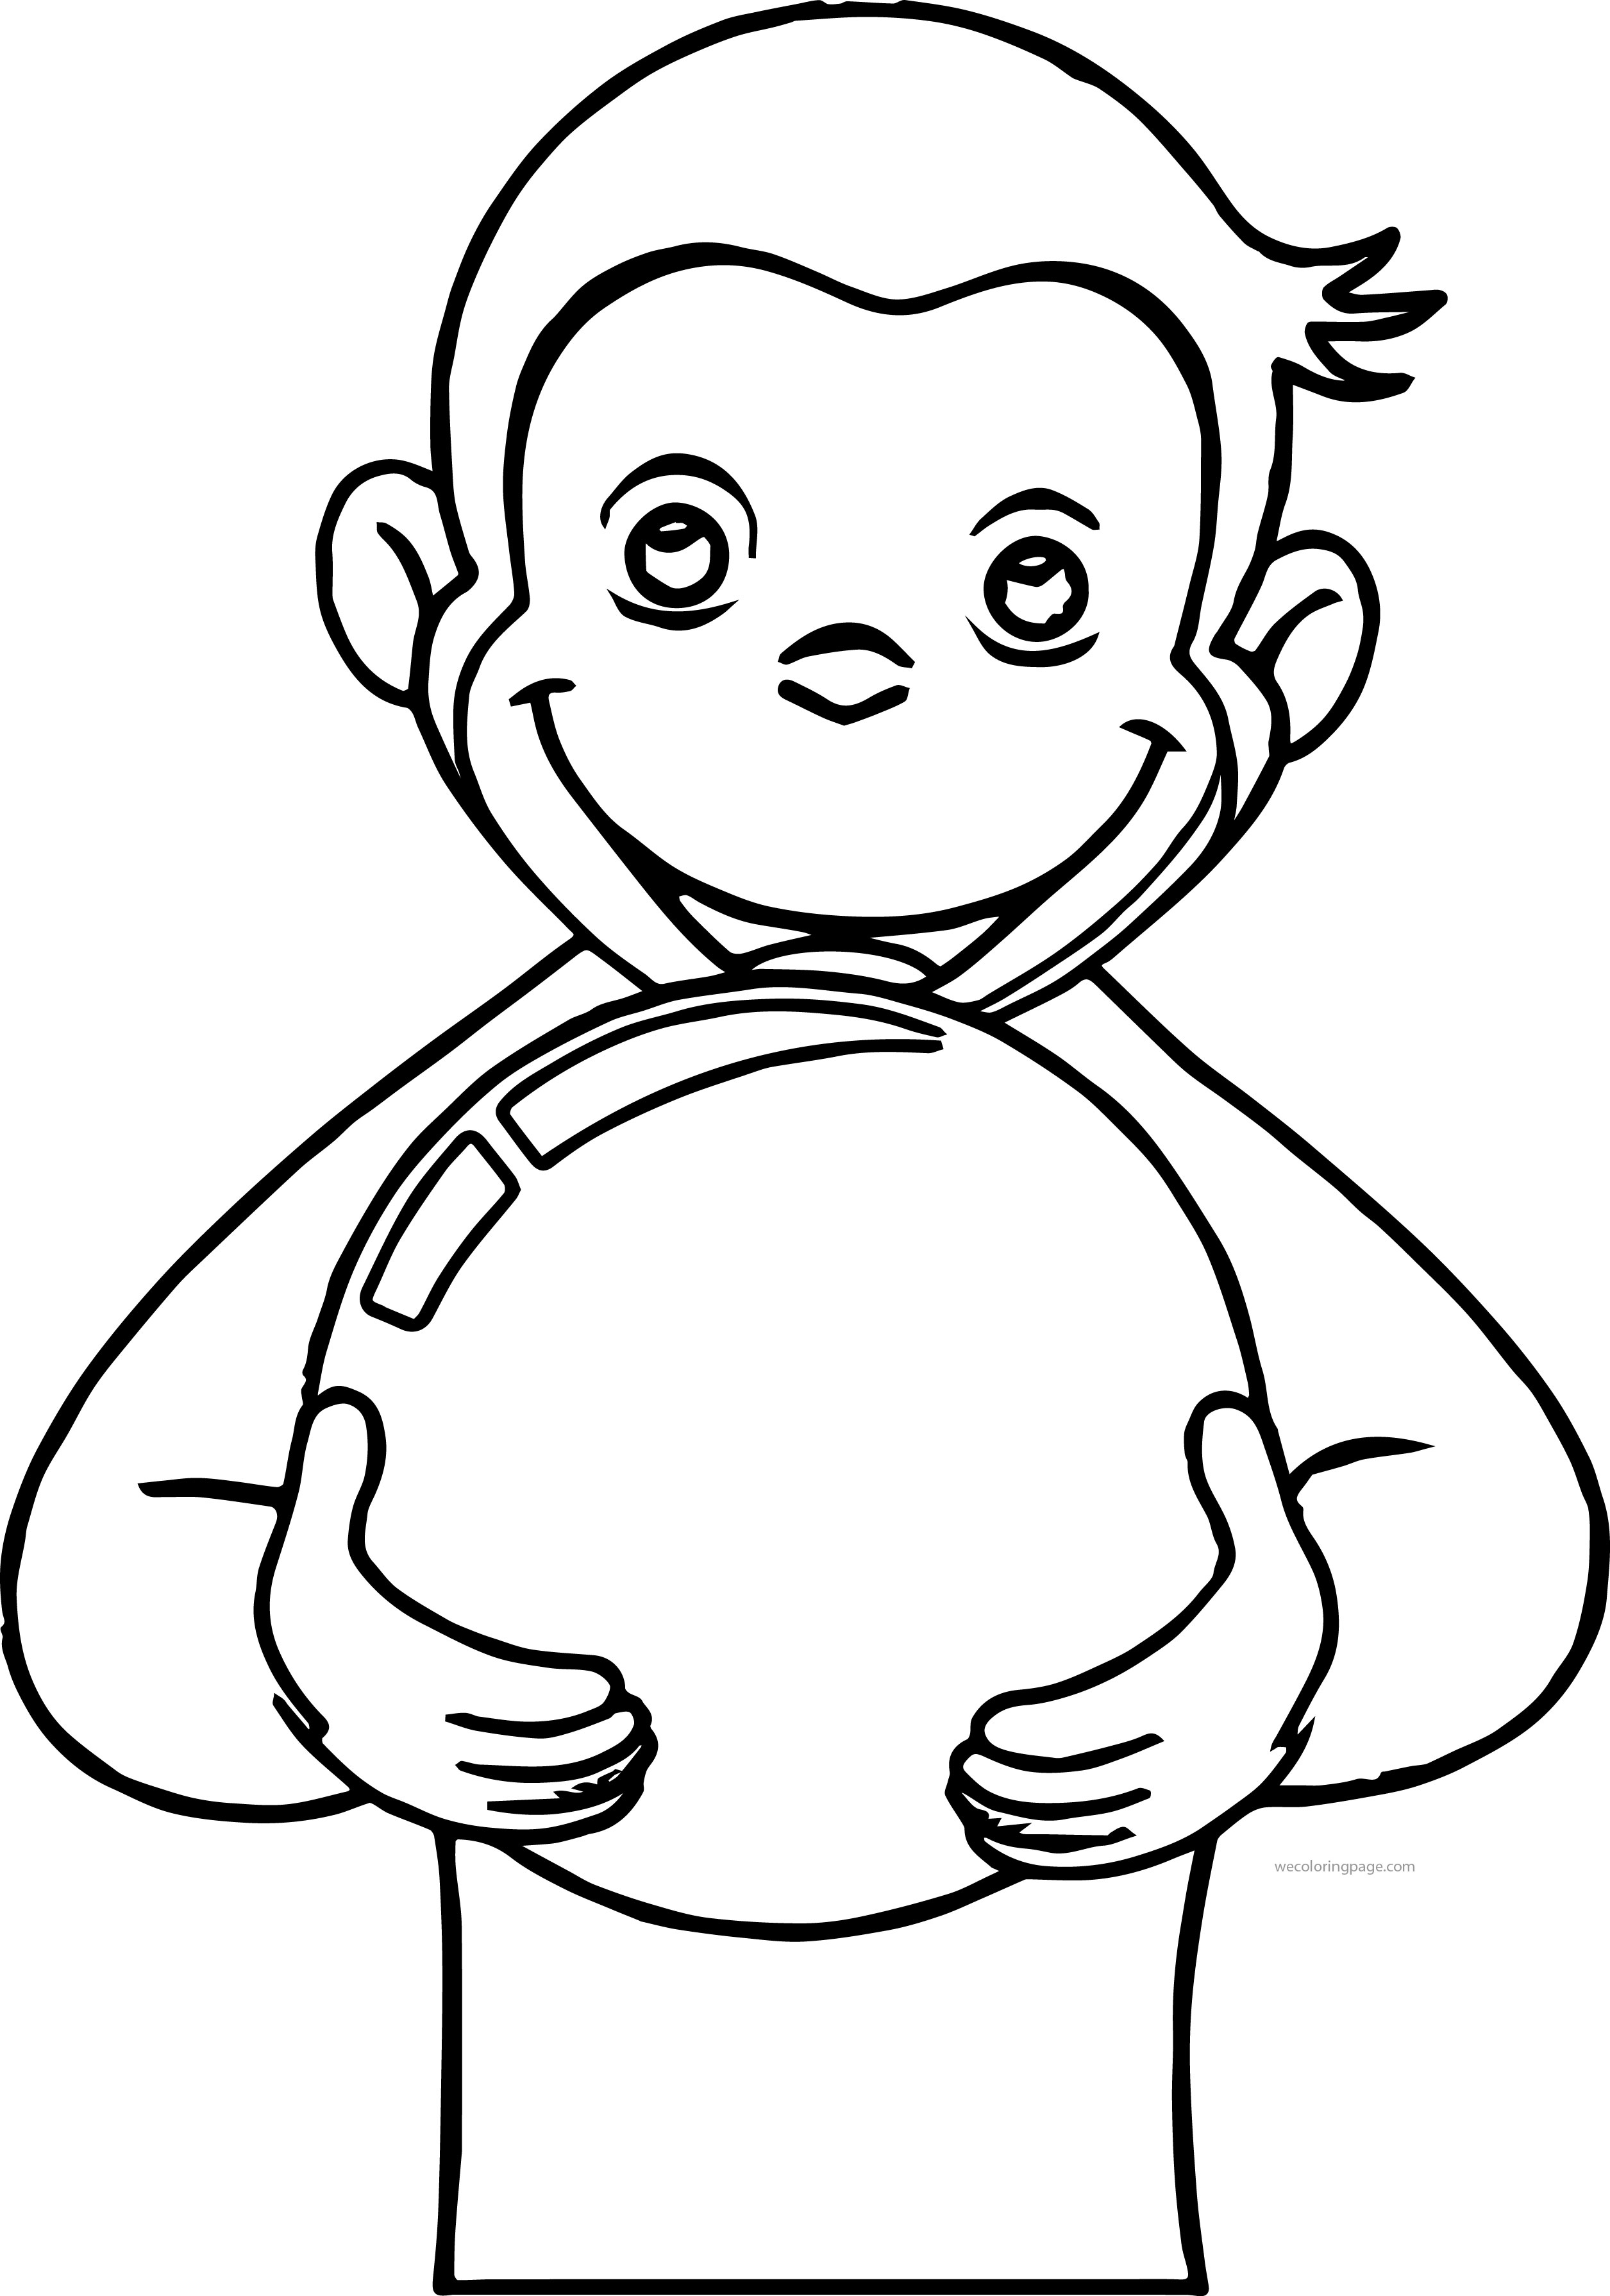 george the monkey coloring pages curious george curious george coloring pages monkey coloring monkey the pages george